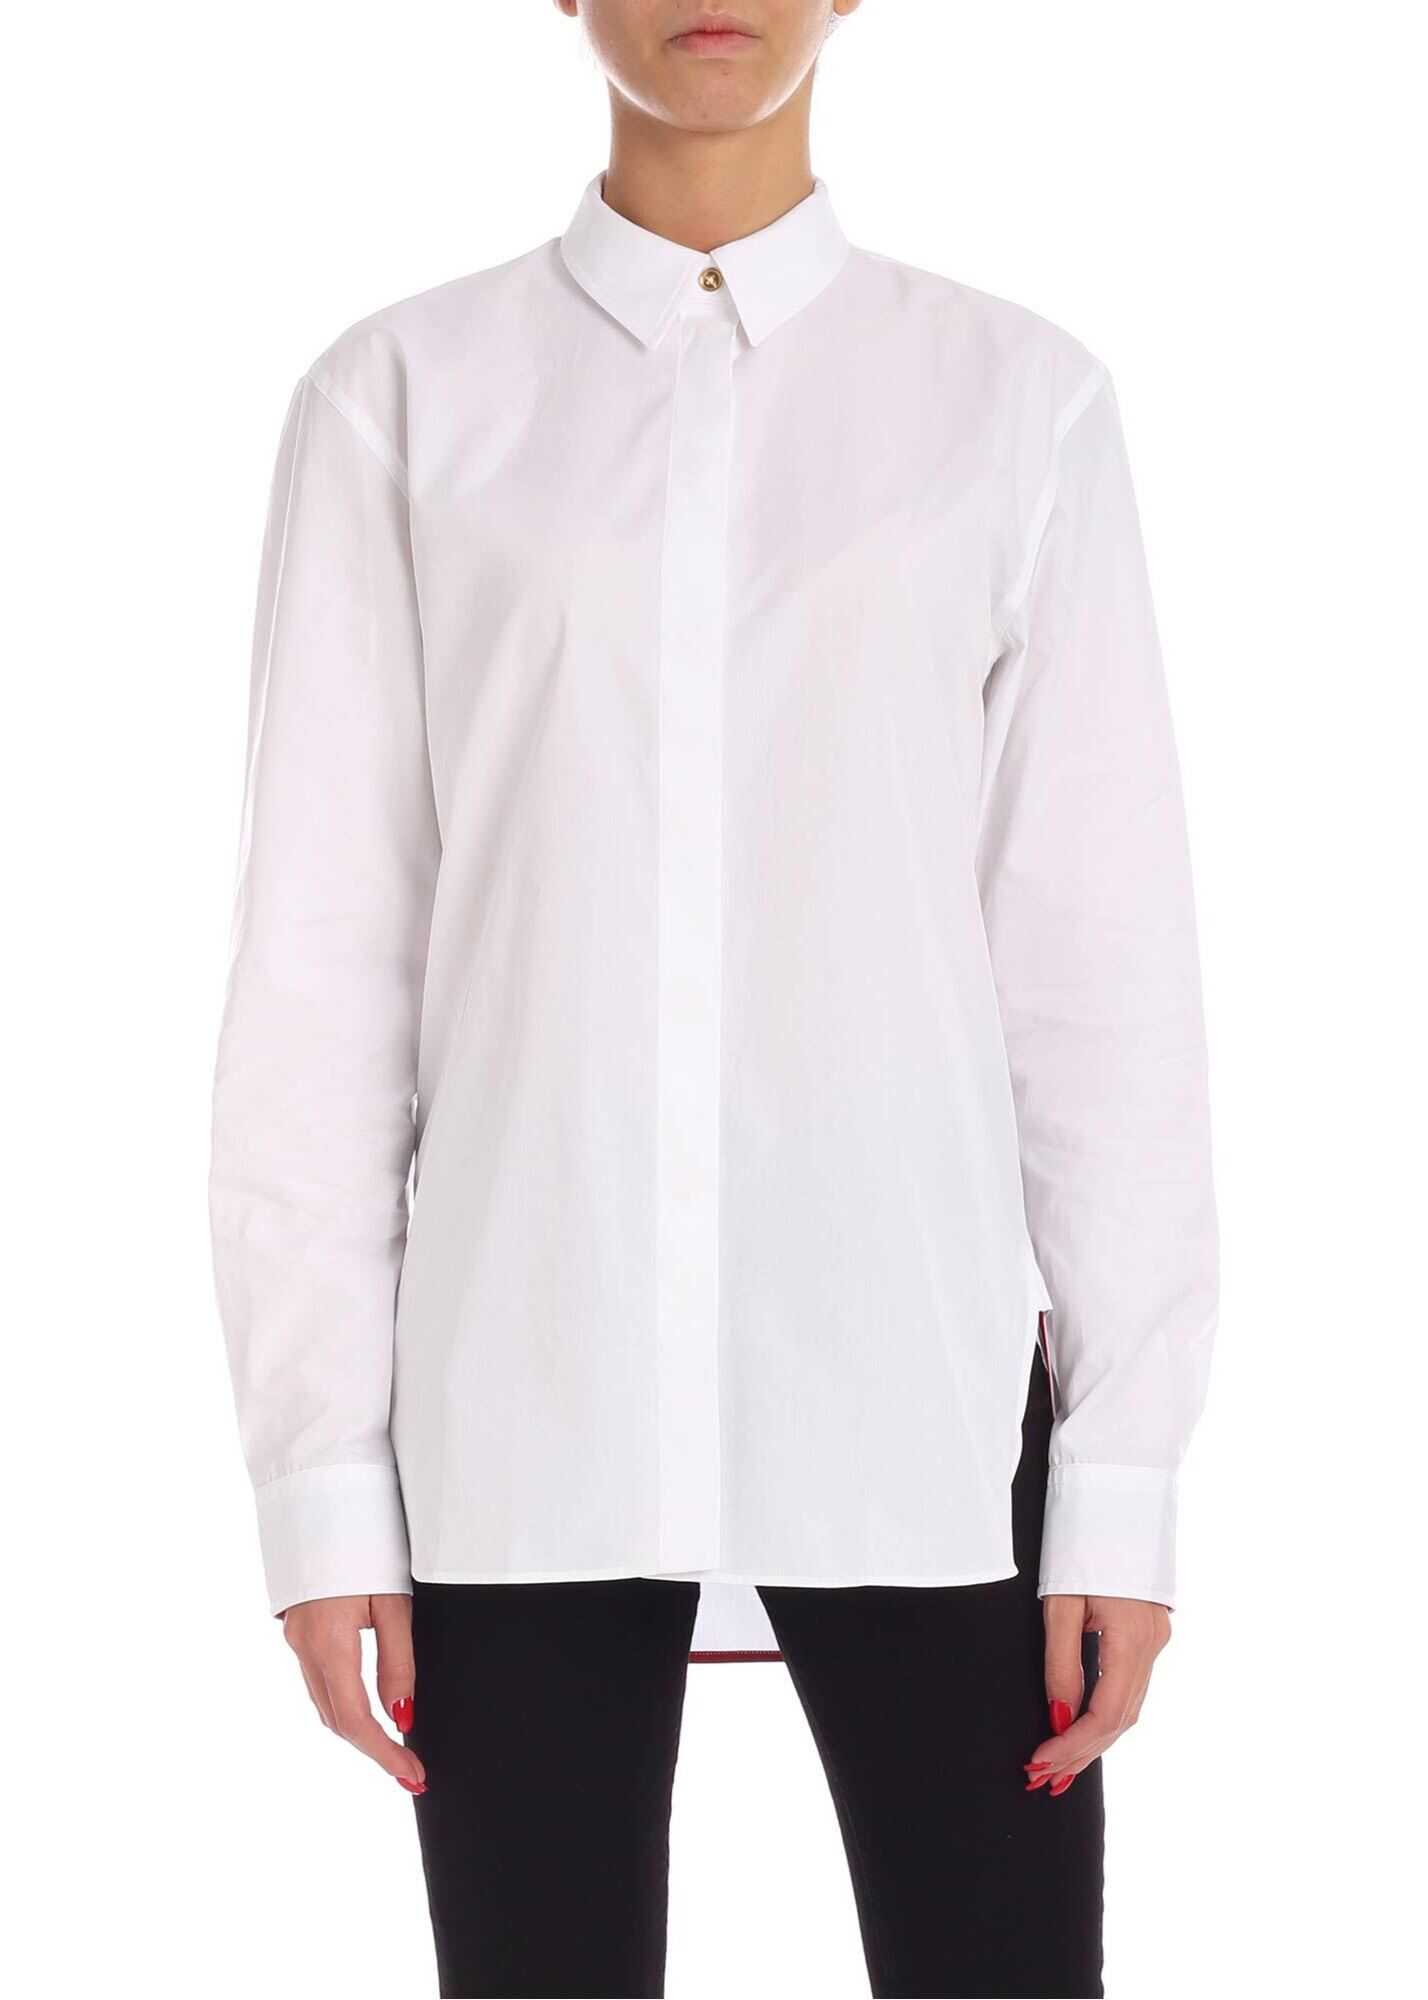 Paul Smith White Shirt White